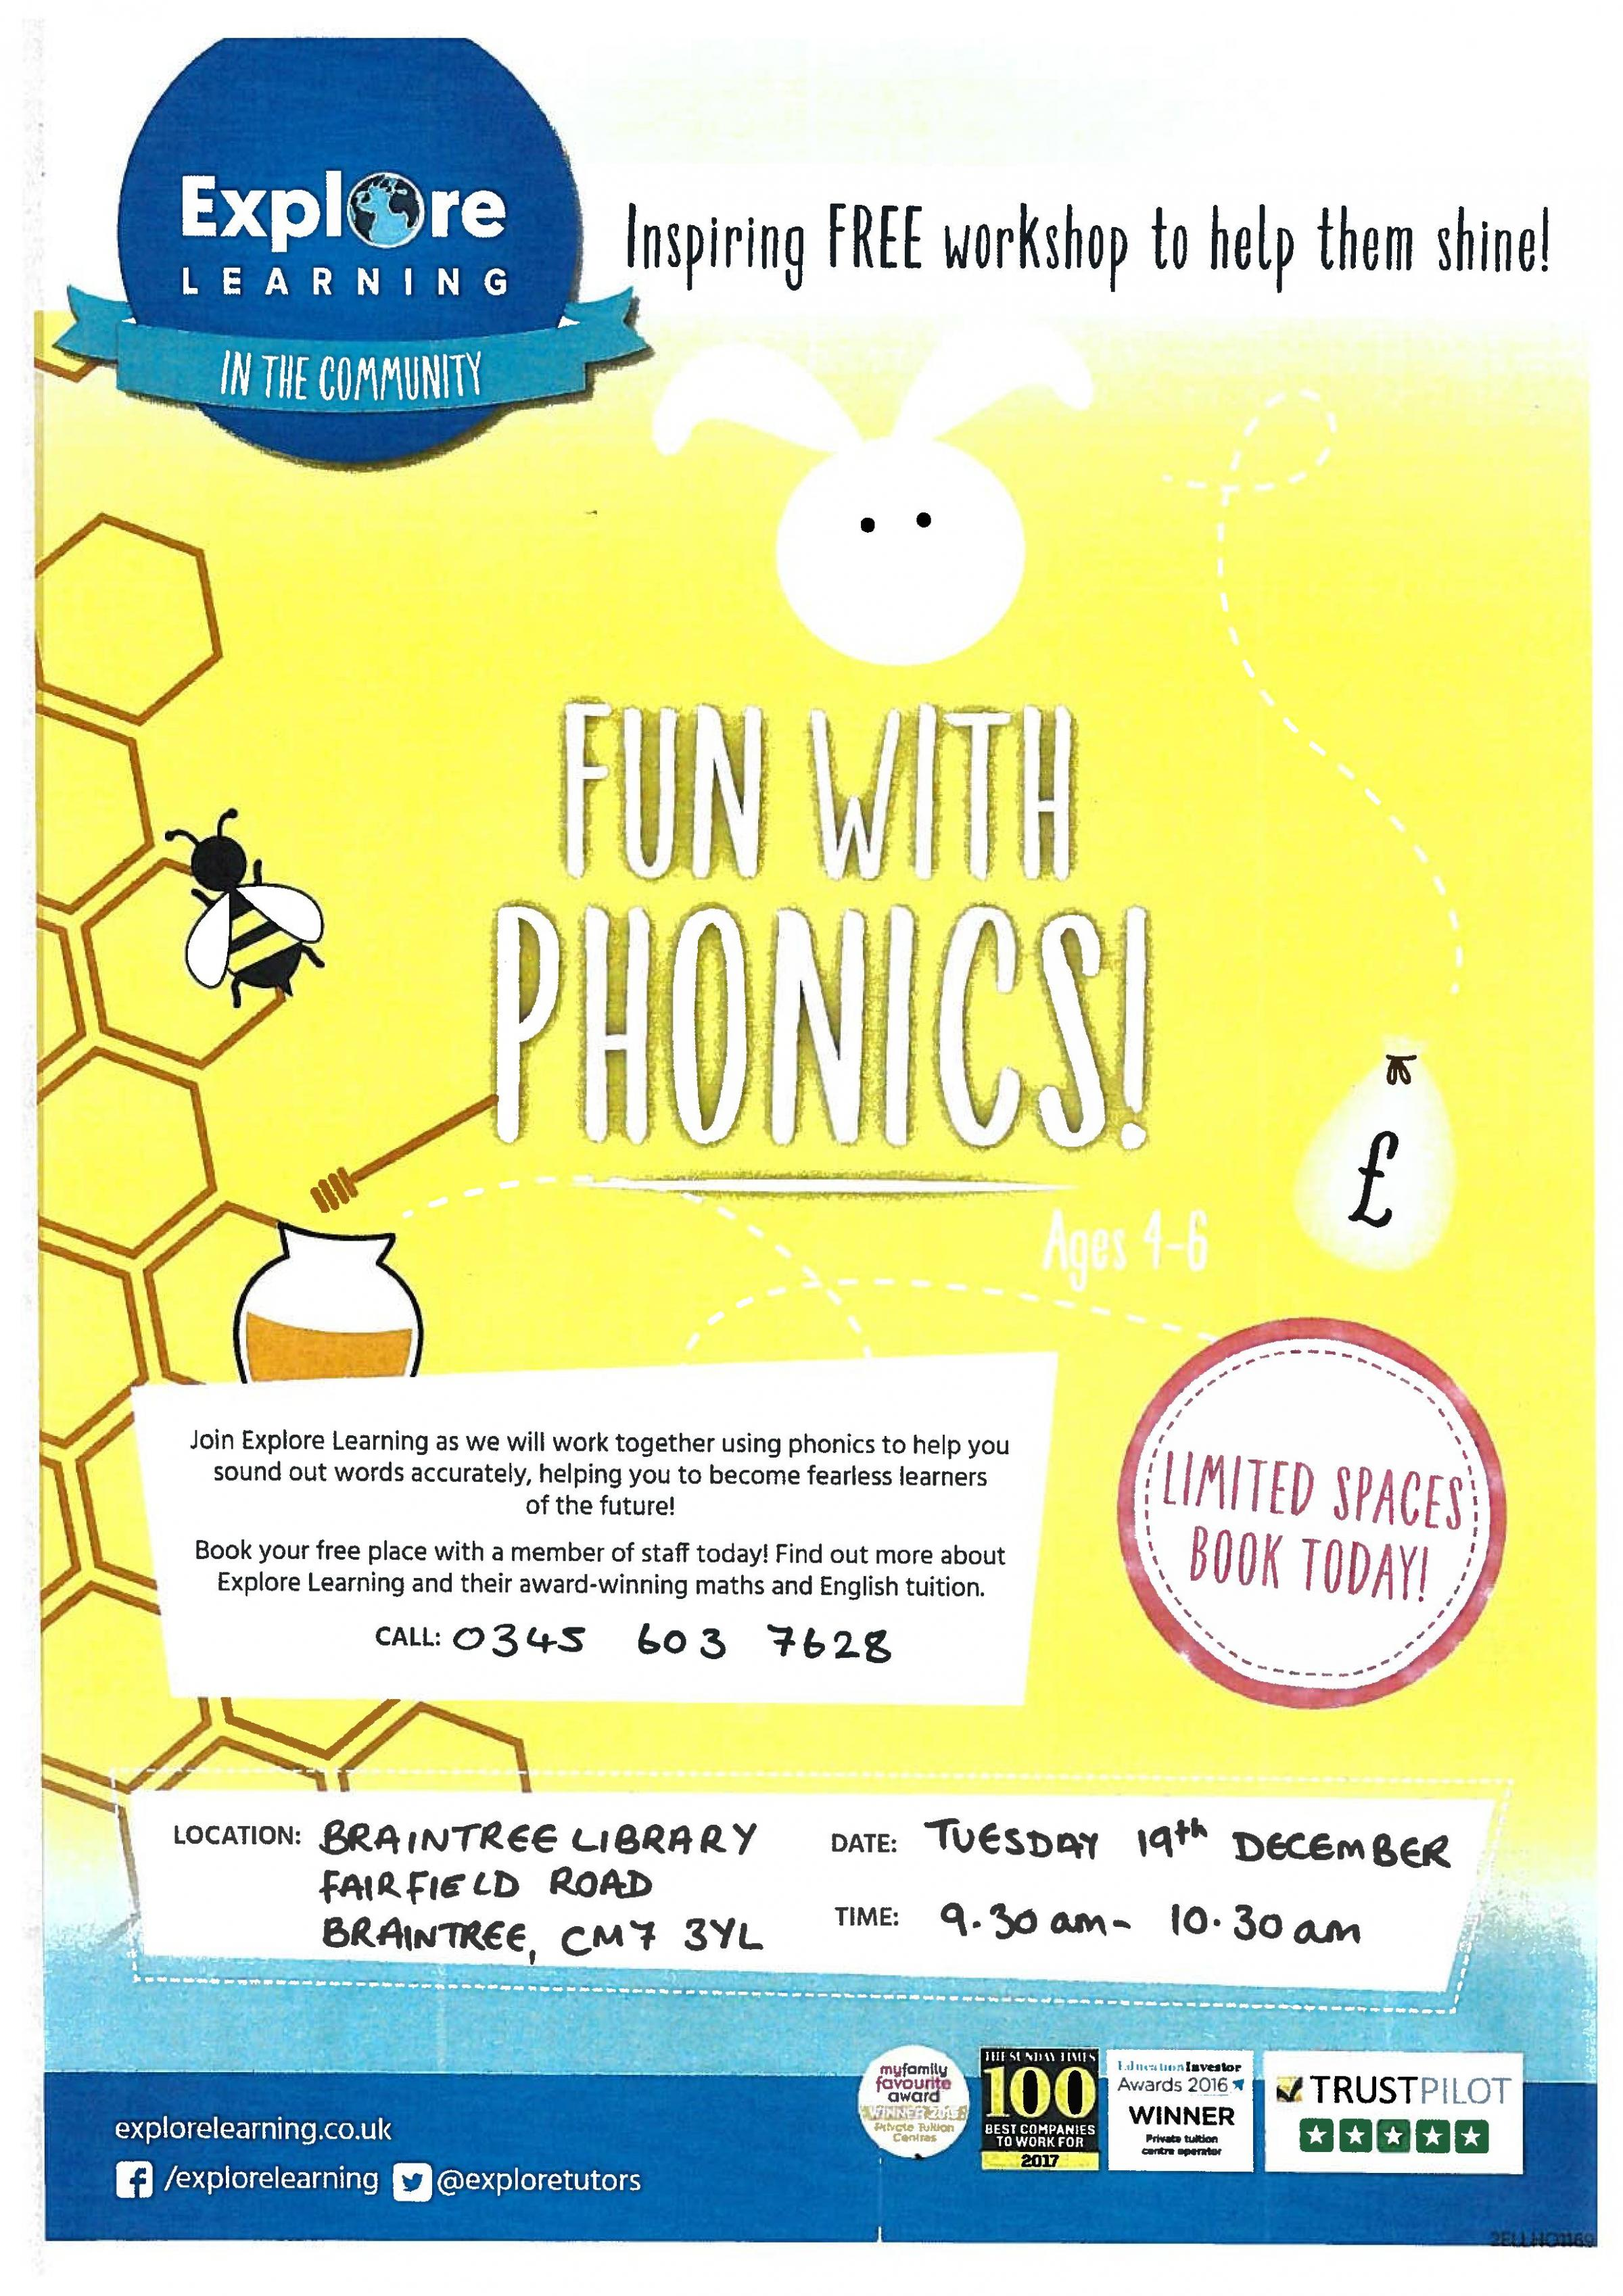 Fun With Phonics - Explore Learning Workshop